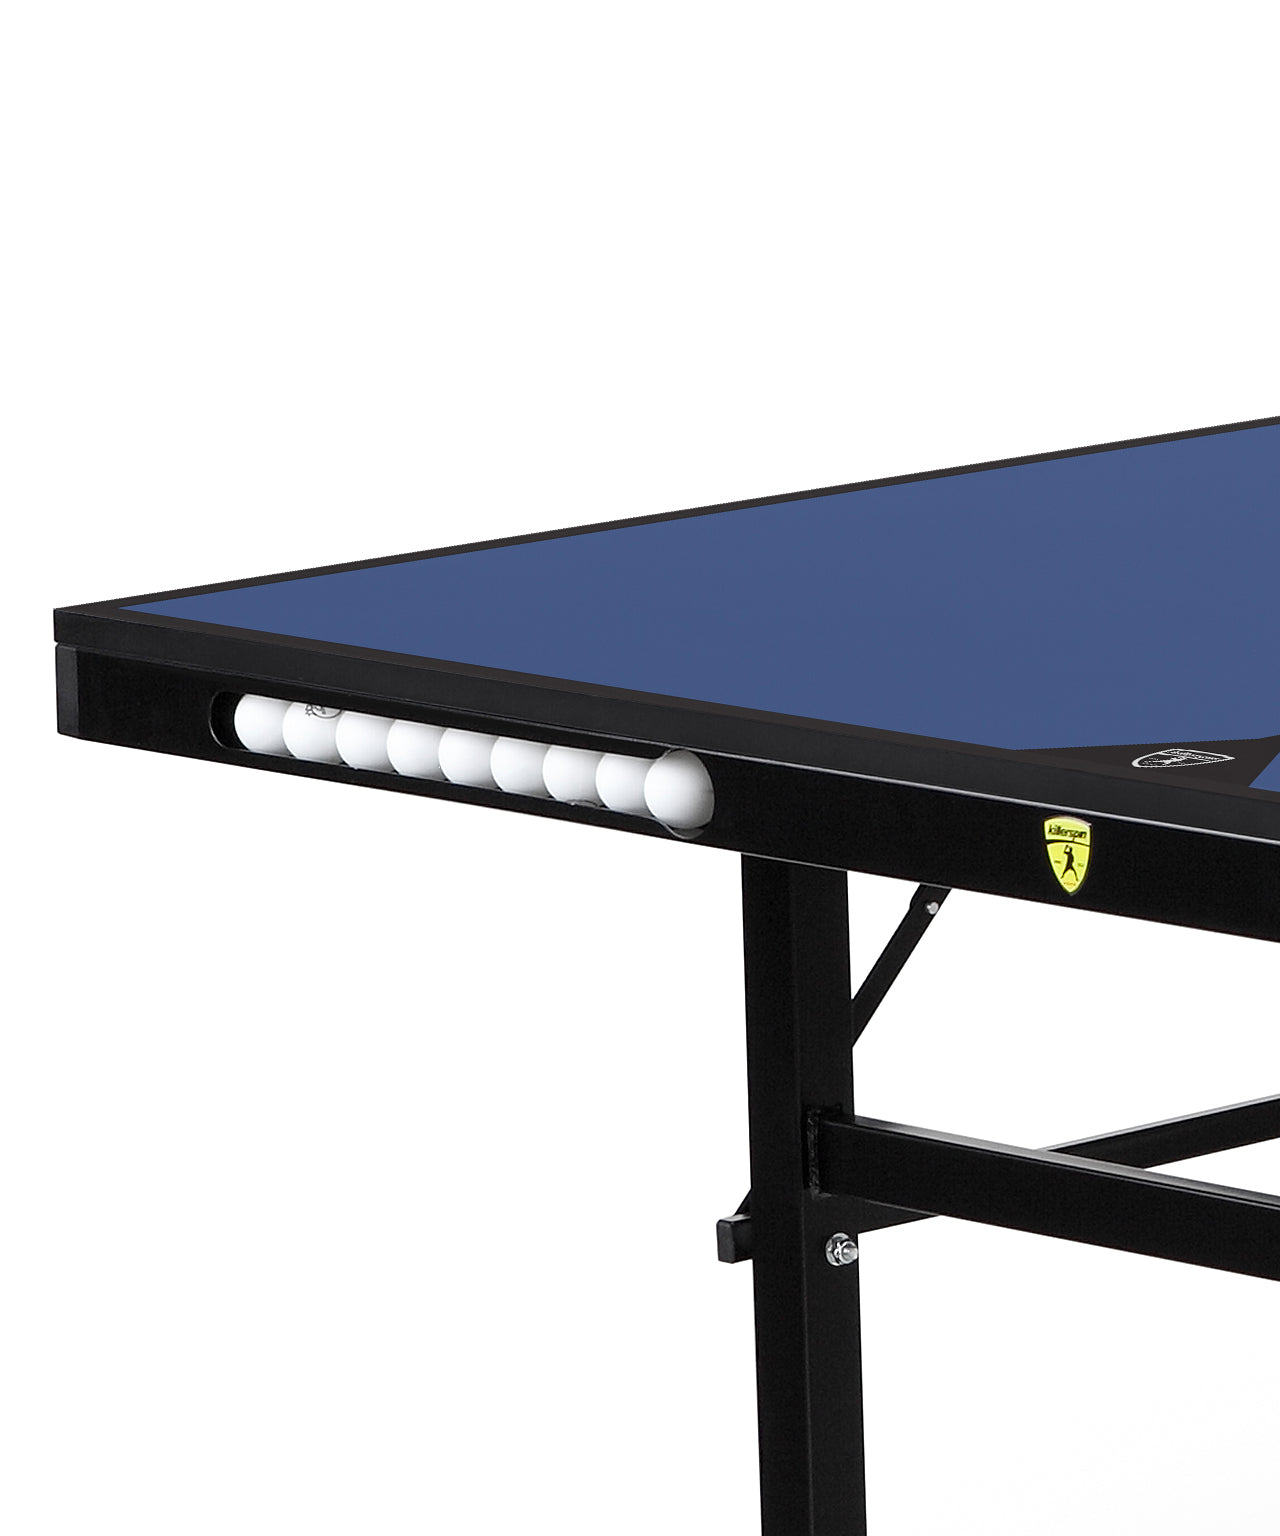 Killerspin Indoor Ping Pong Table UnPlugNPlay415 Mega DeepBlu Black frame Blue top model 2020 - ball pocket